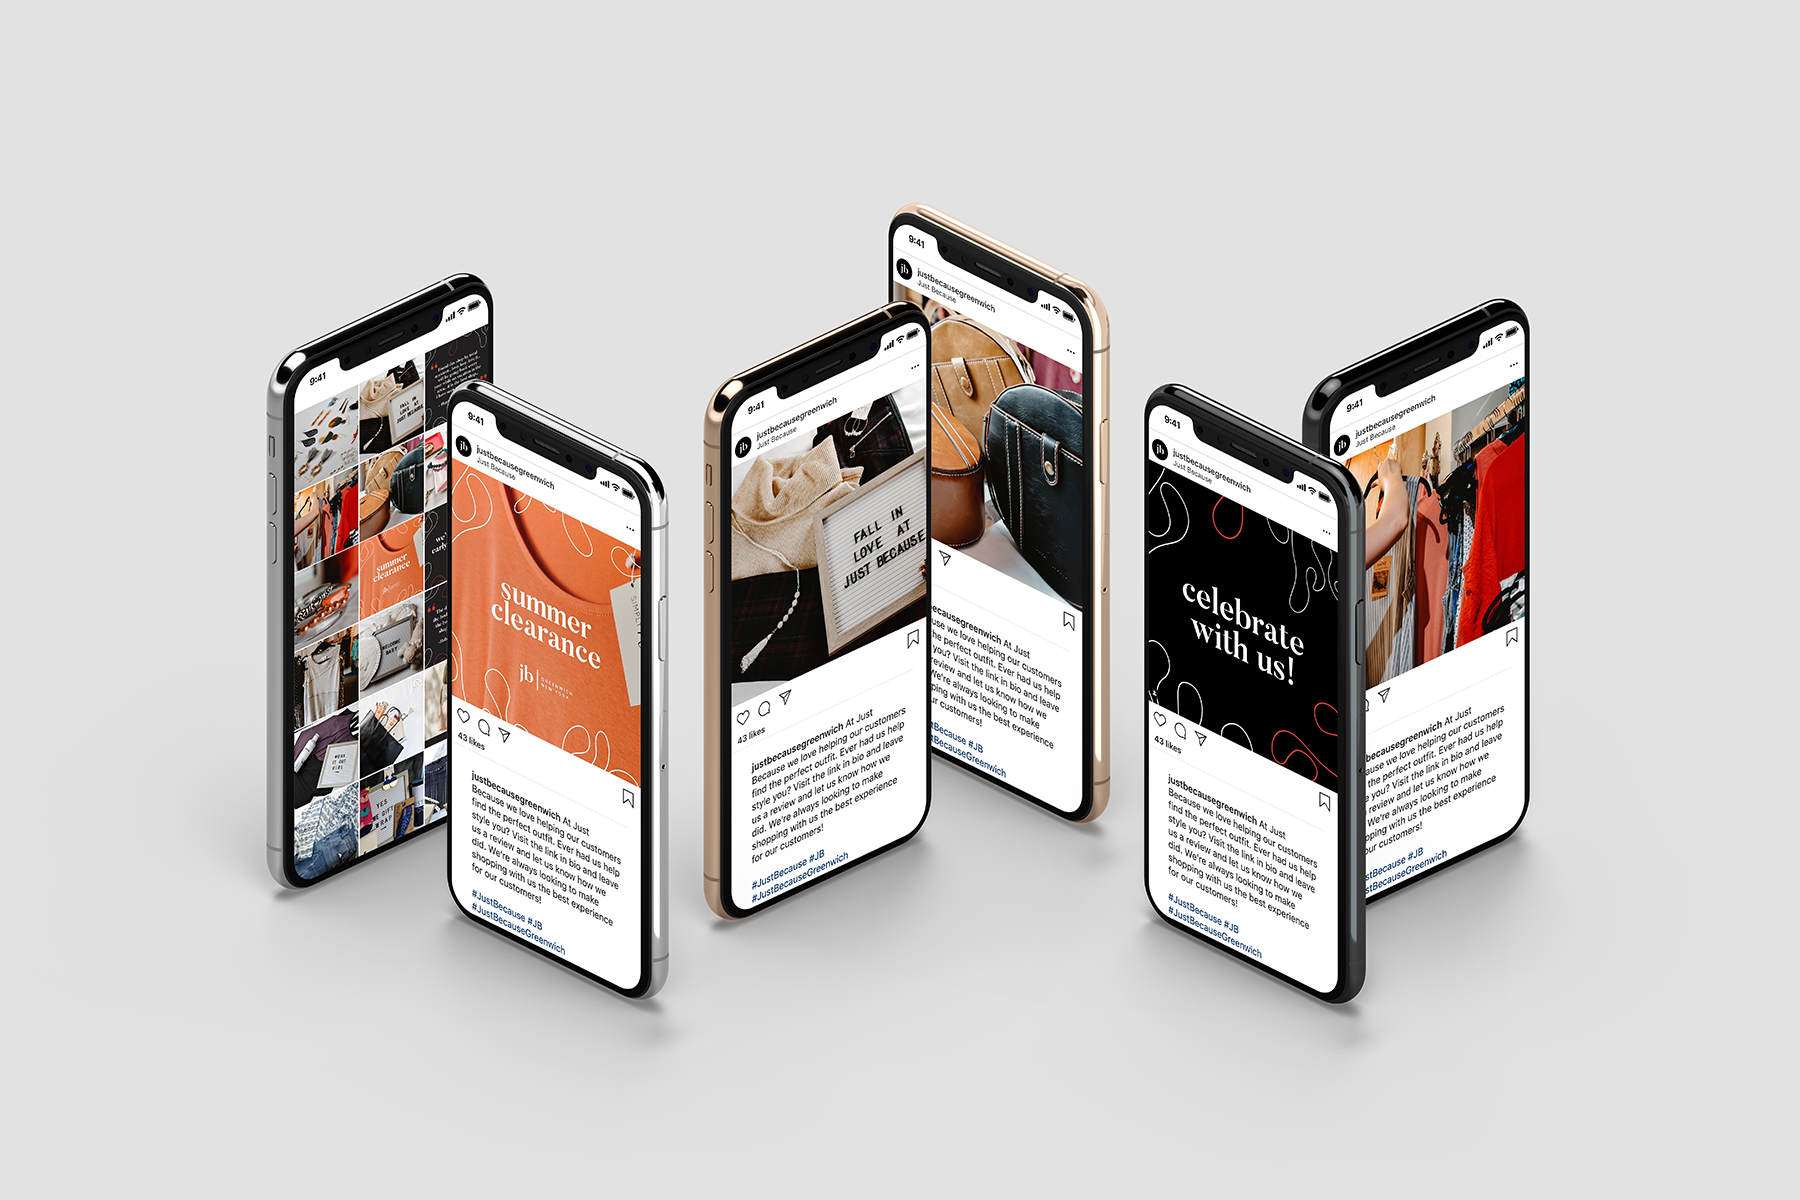 content agency social media posts on iPhones